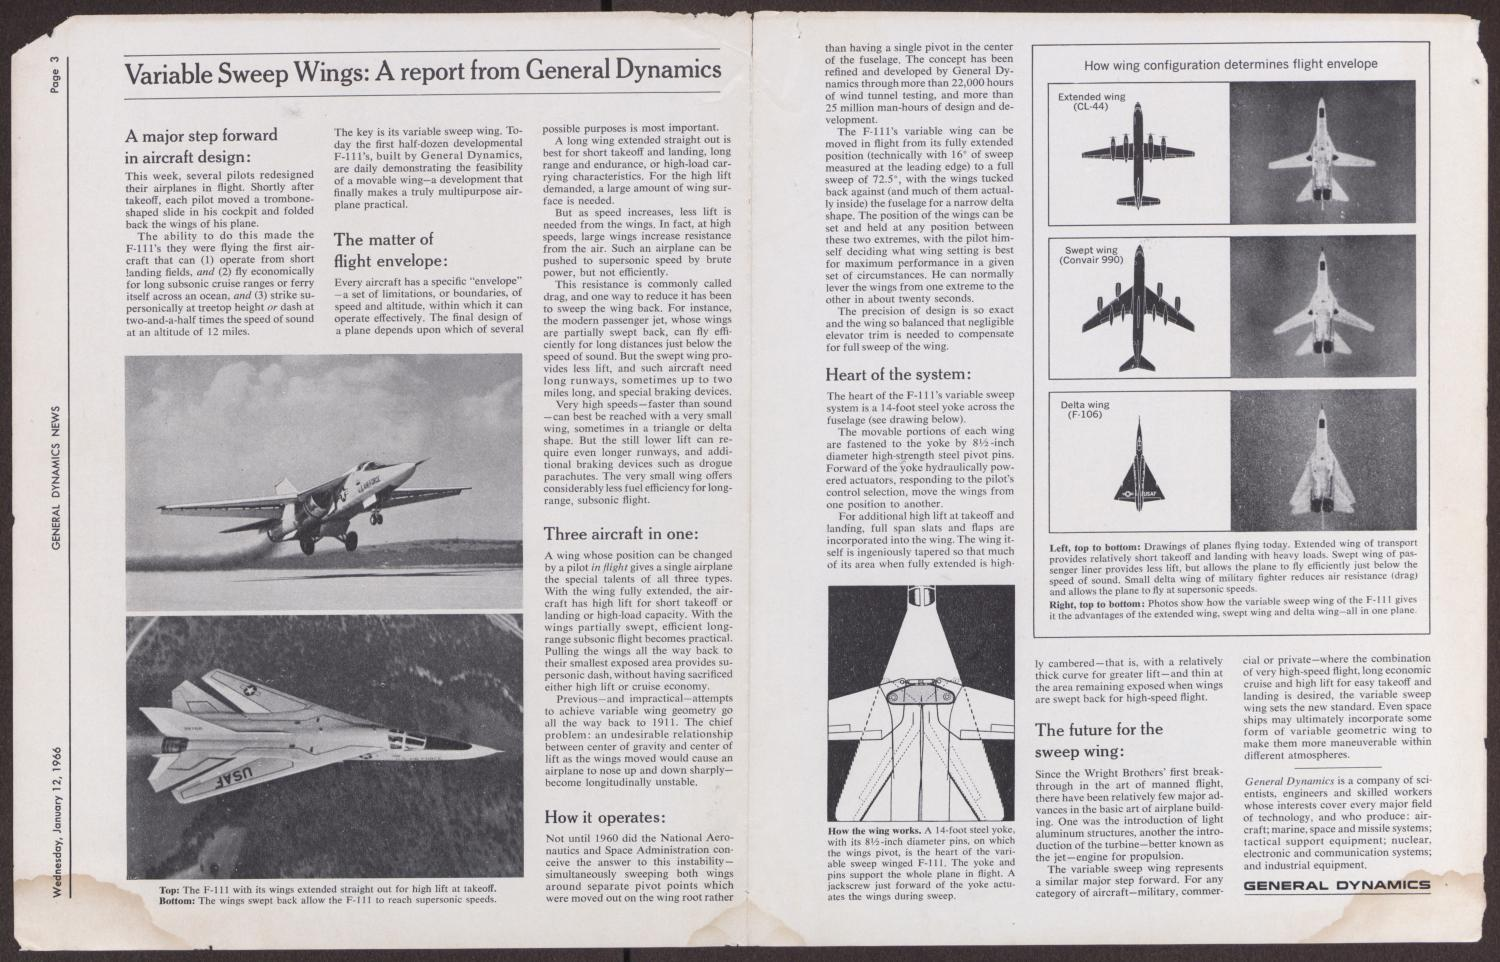 General Dynamics News, Wednesday, January 19, 1966 - The